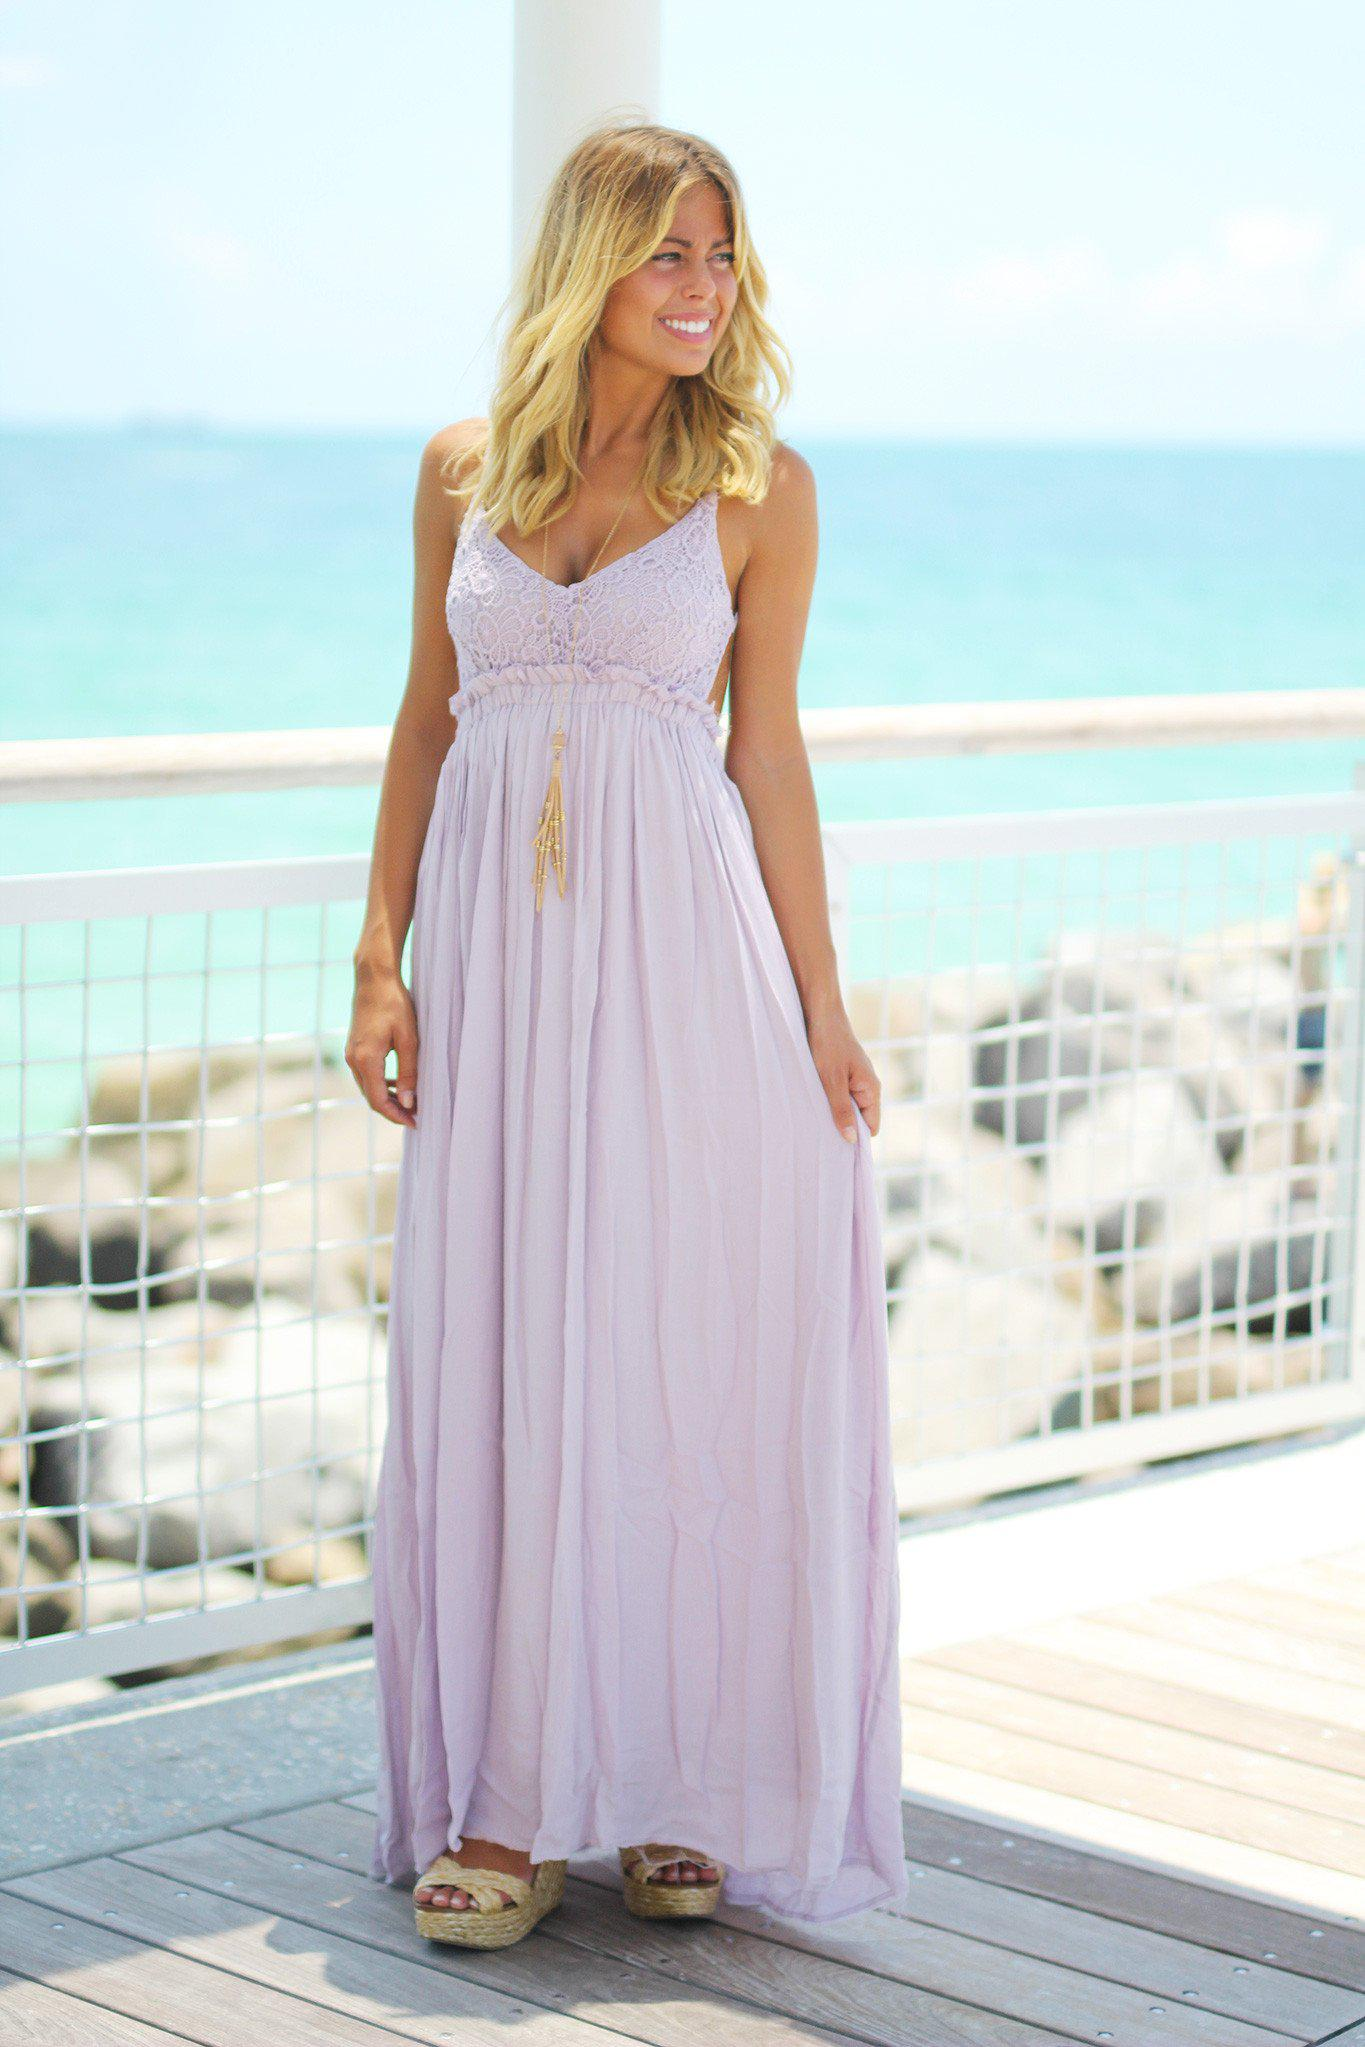 Lavender Lace Maxi Dress with Open Back | Maxi Dresses – Saved by ...